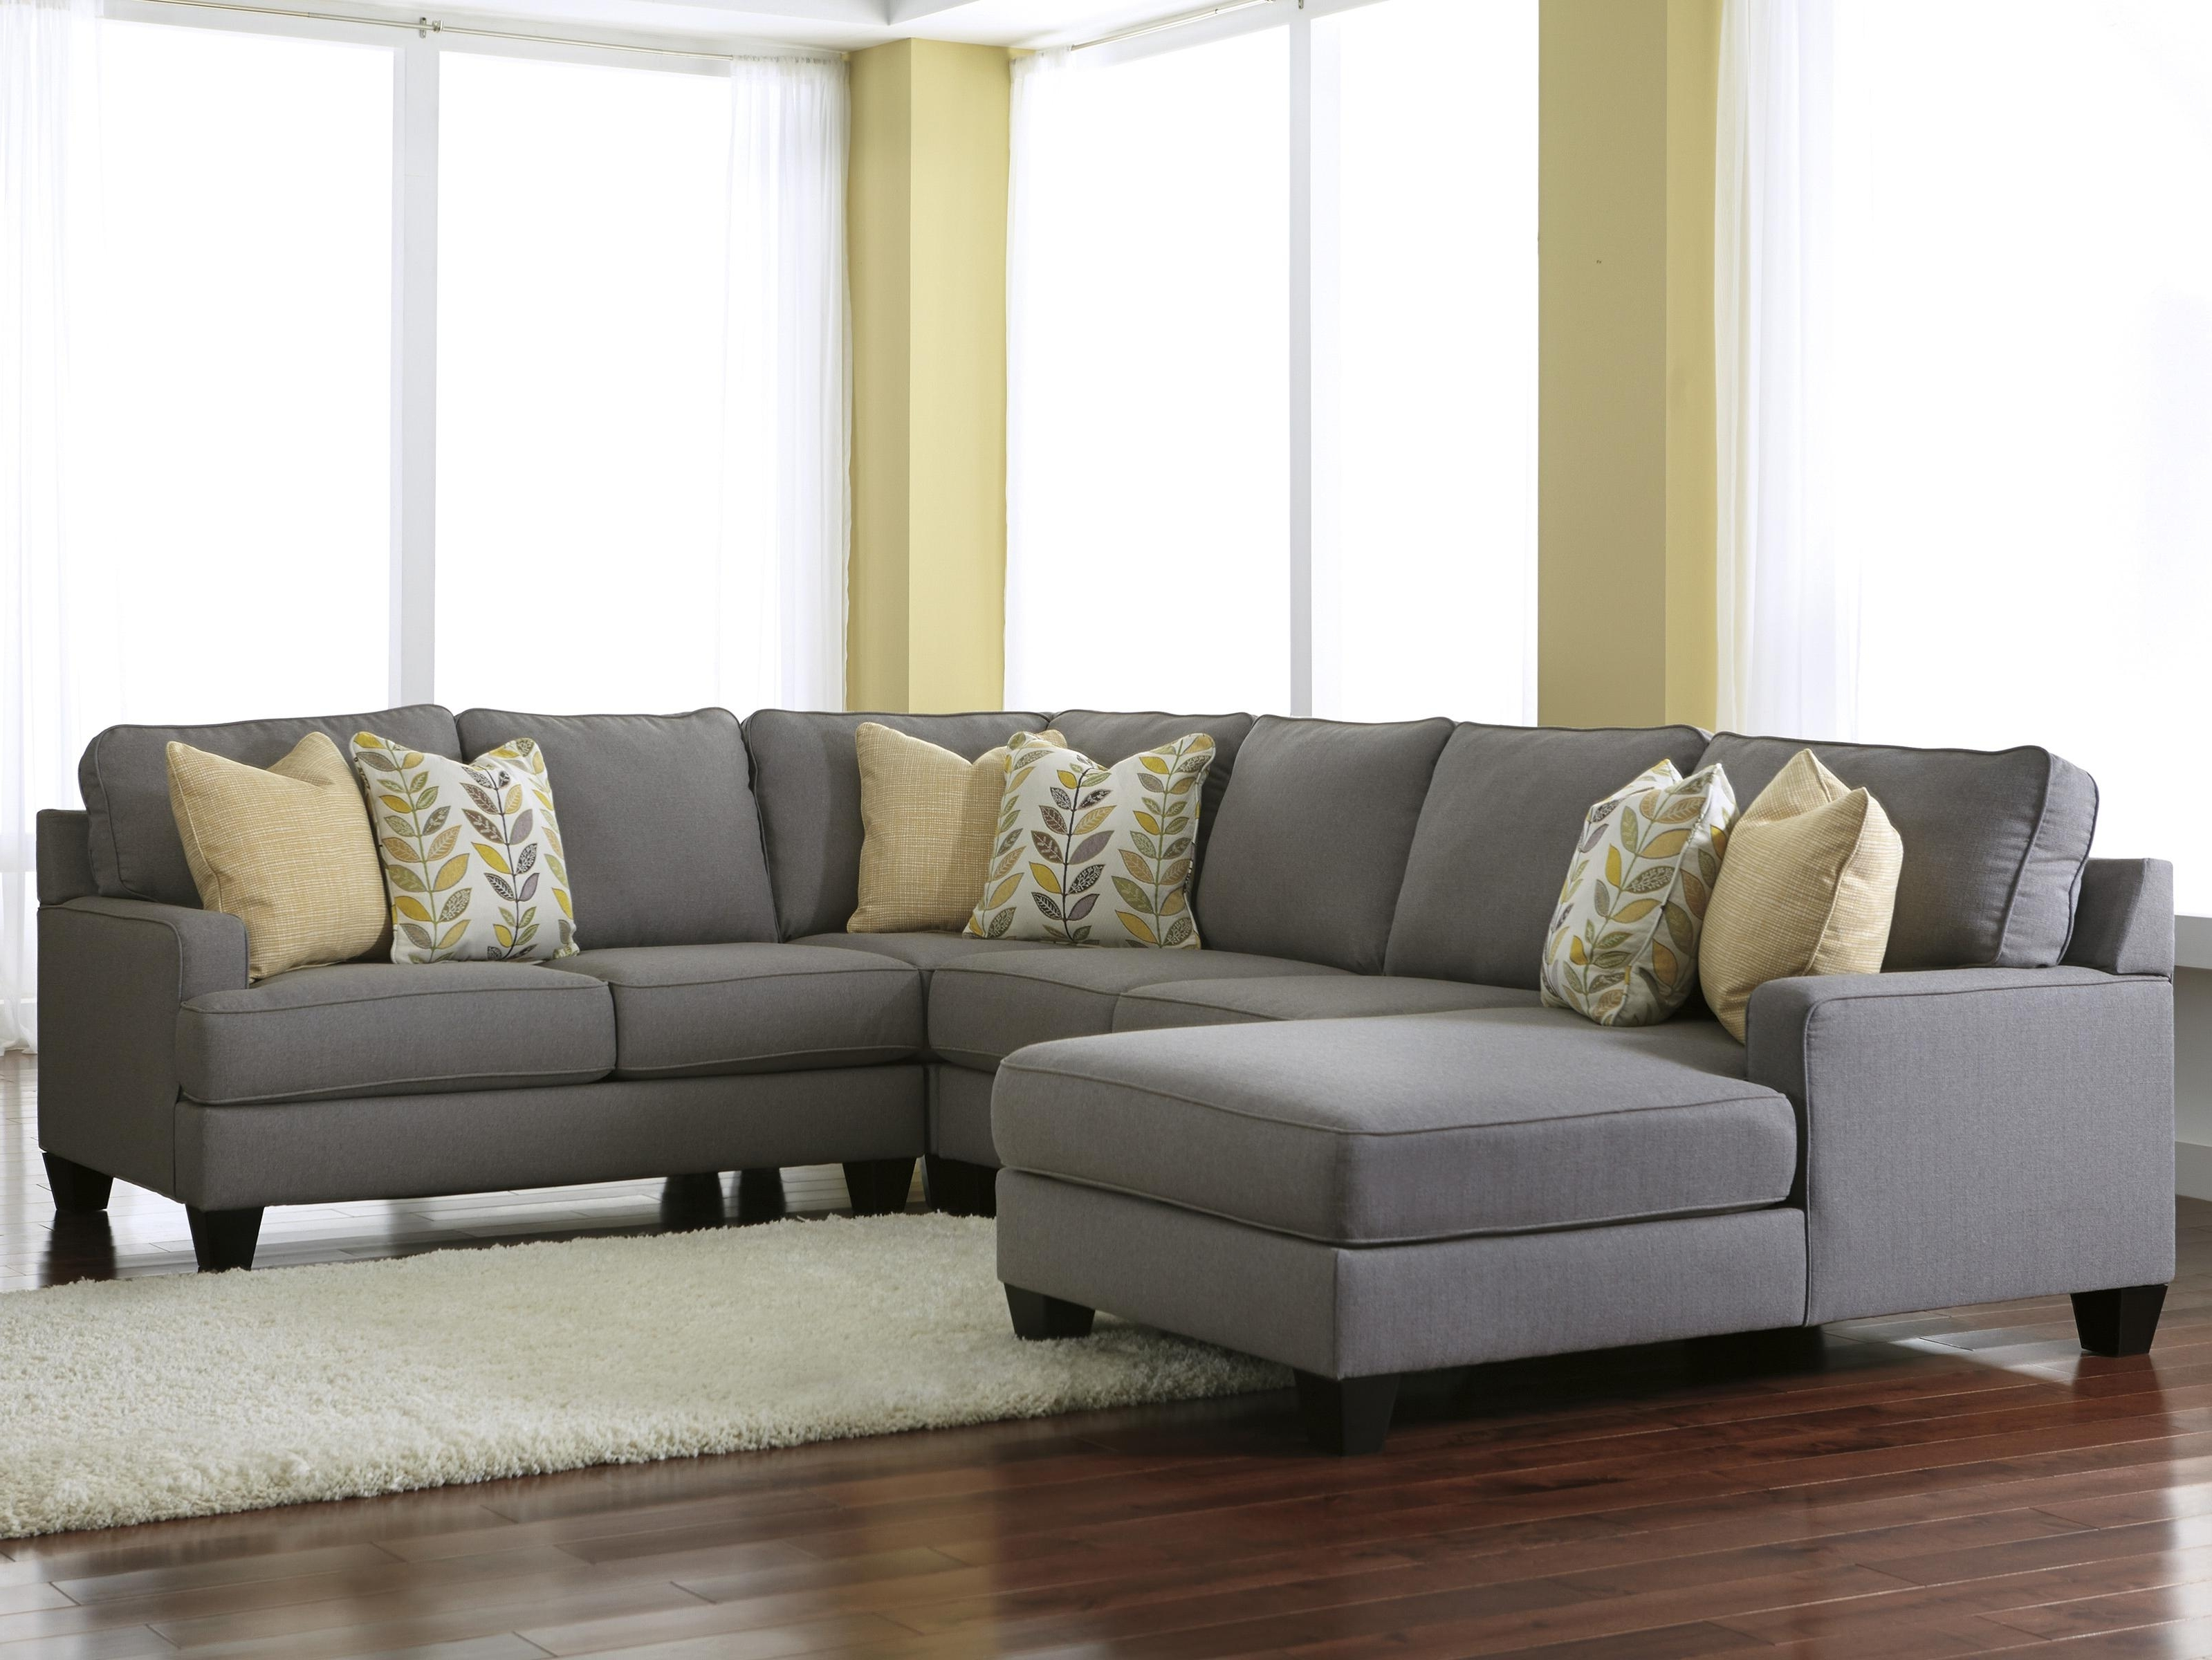 2018 2 Seat Sectional Sofas In Modern 4 Piece Sectional Sofa With Left Chaise & Reversible Seat (View 8 of 15)